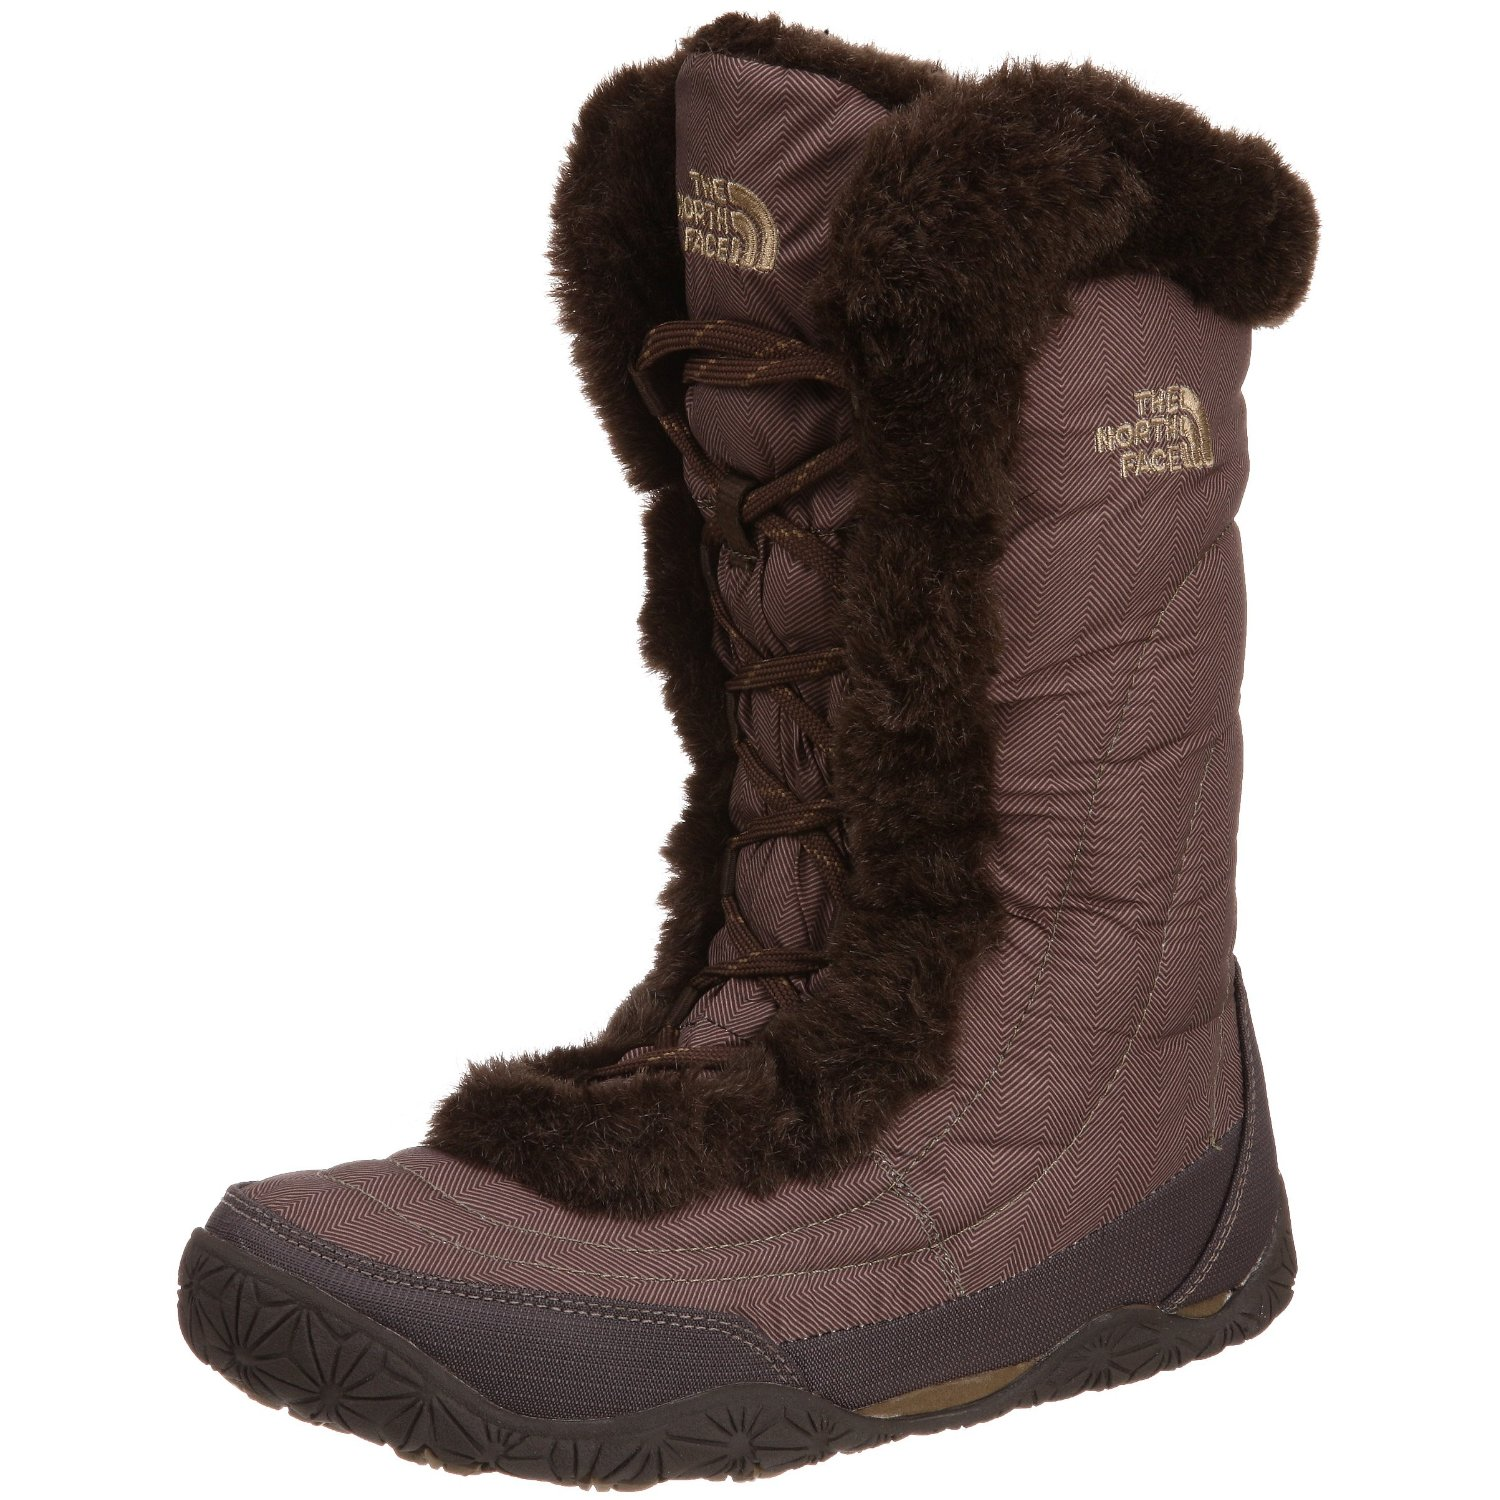 Elegant The North Face Janey II Boot - Womenu0026#39;s | Backcountry.com